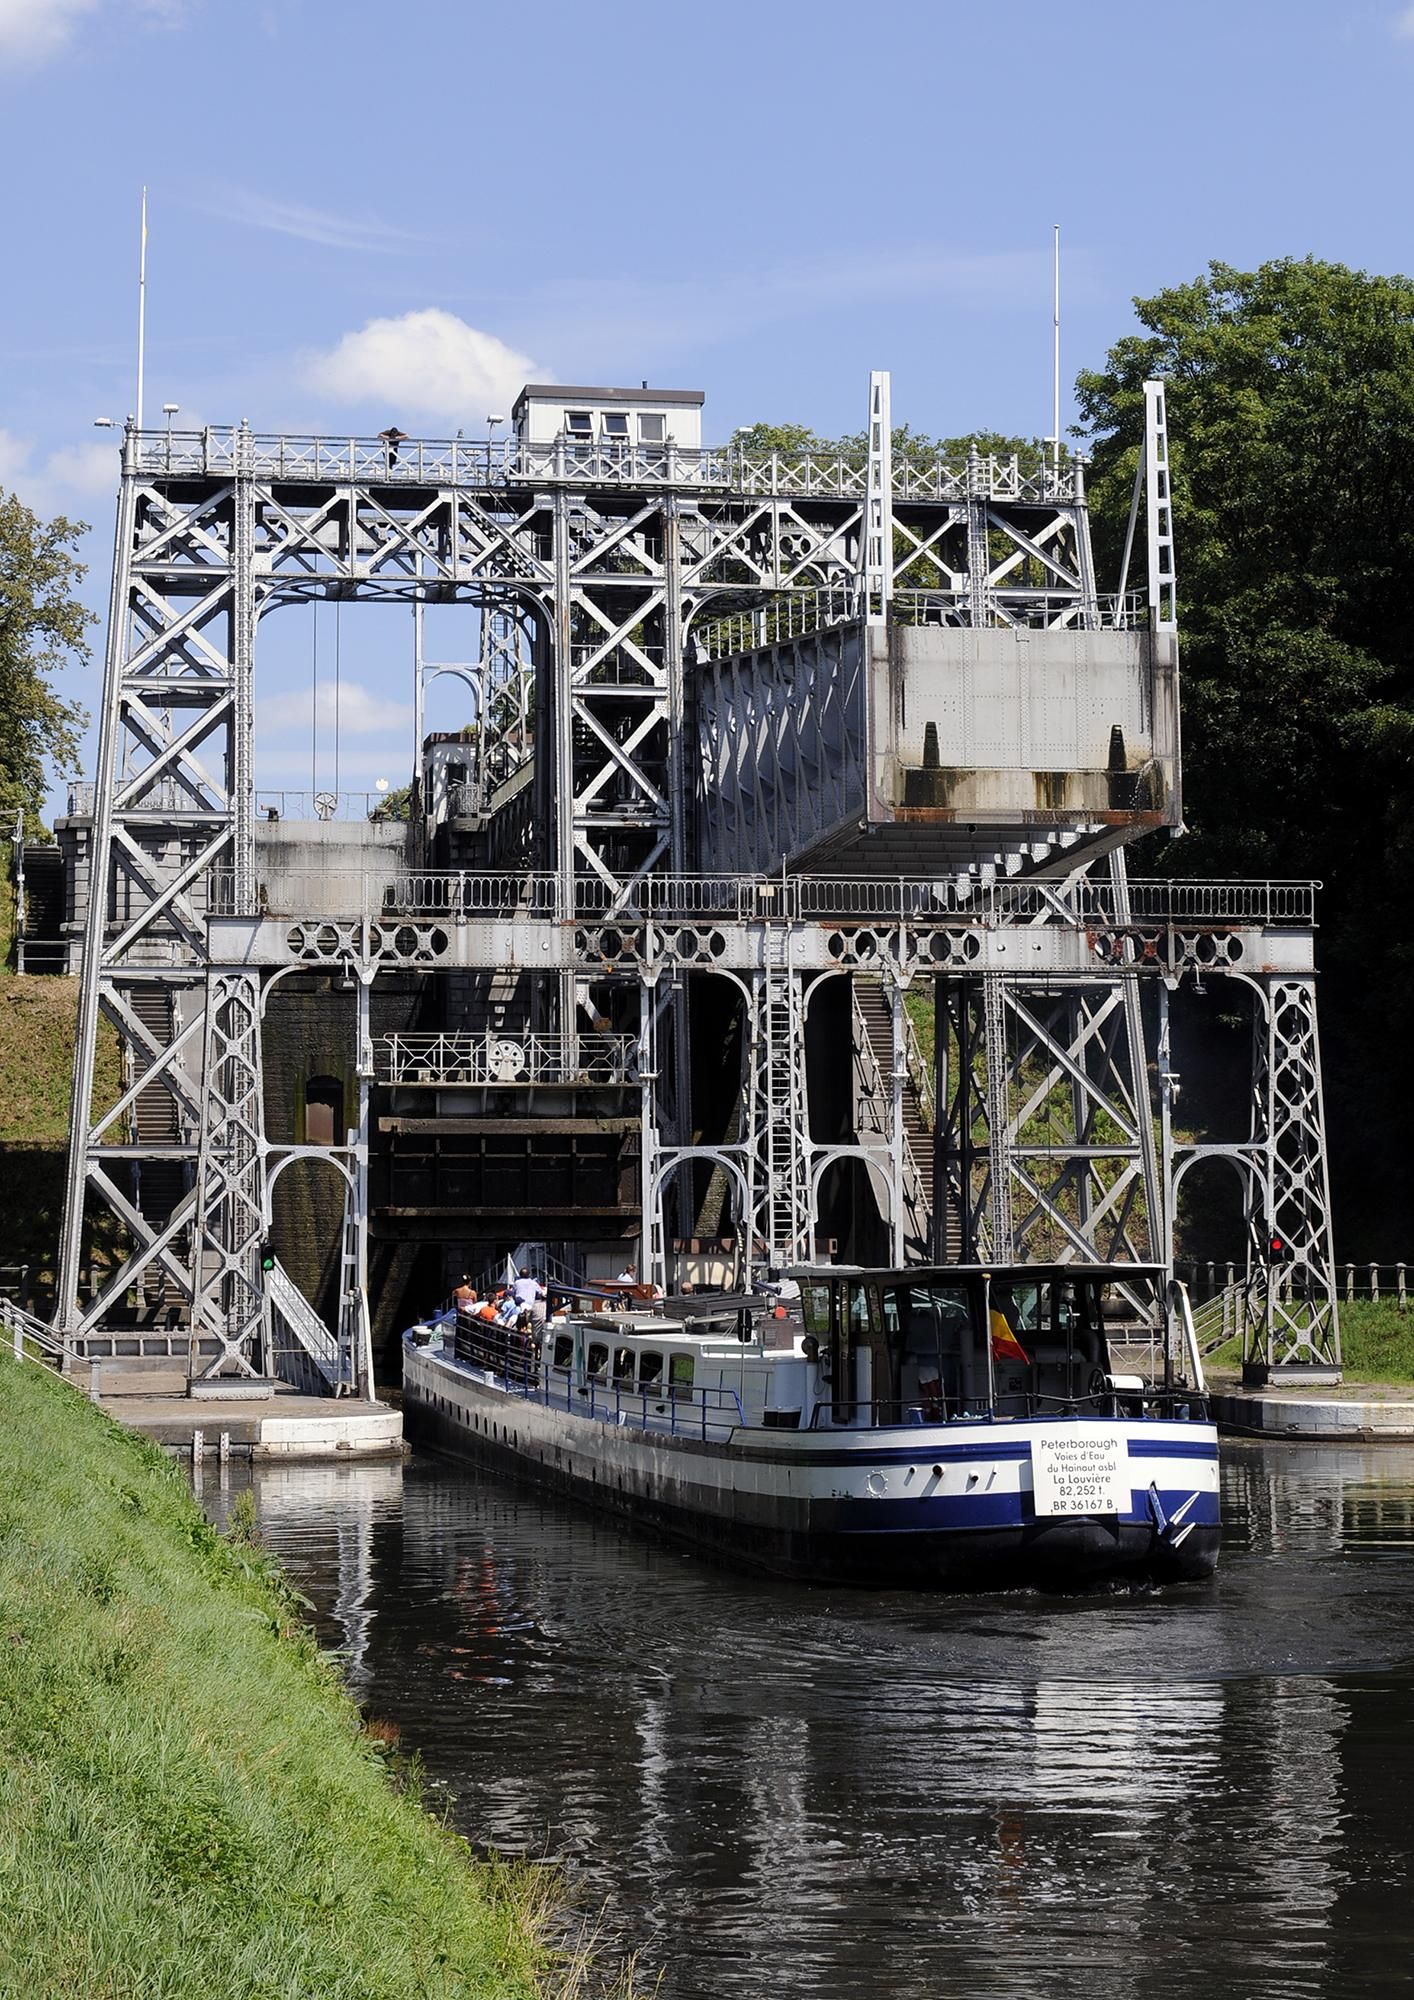 Take a boat trip out on the historic Canal du Centre classified with its hydraulic boat lifts as World Heritage by UNESCO since 1998. – © voiesdeau.hainaut.be